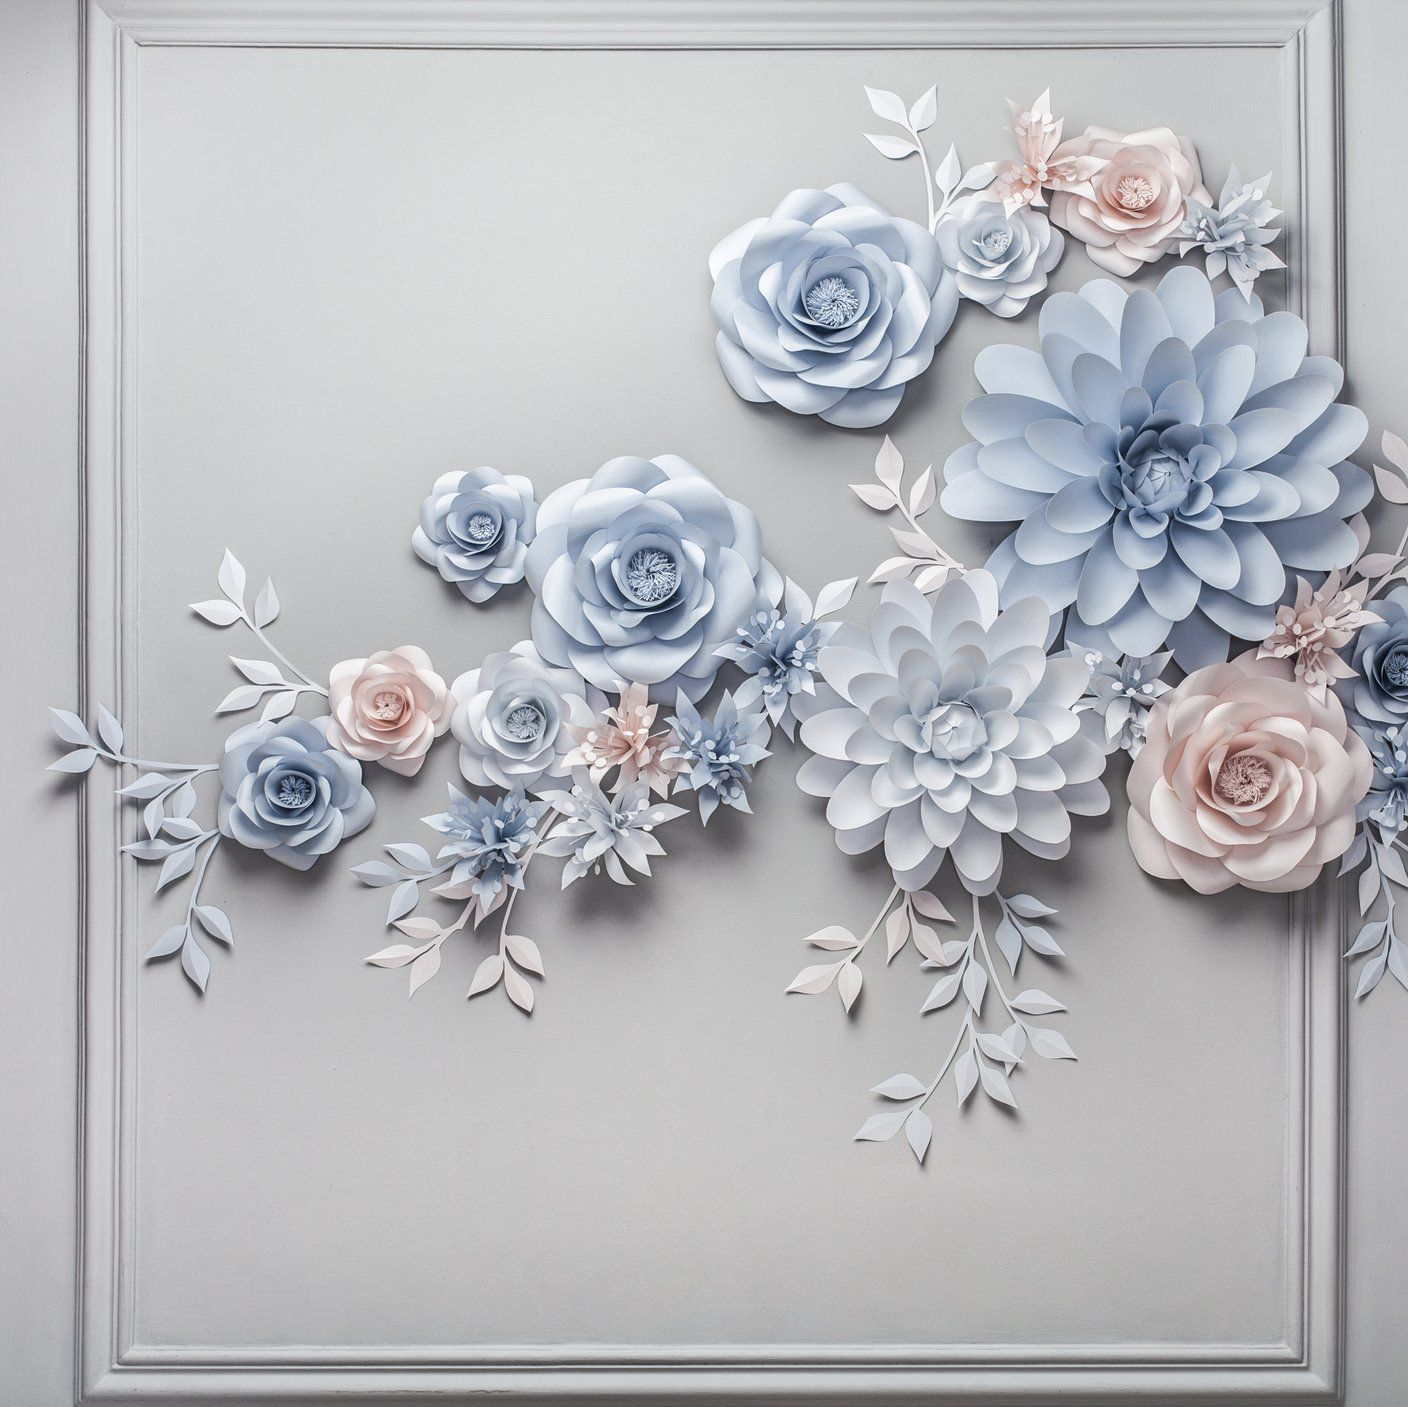 Paper flower backdrop - wedding paper flower backd - Paper Flower Backdrop Wedding #paperflowerswedding